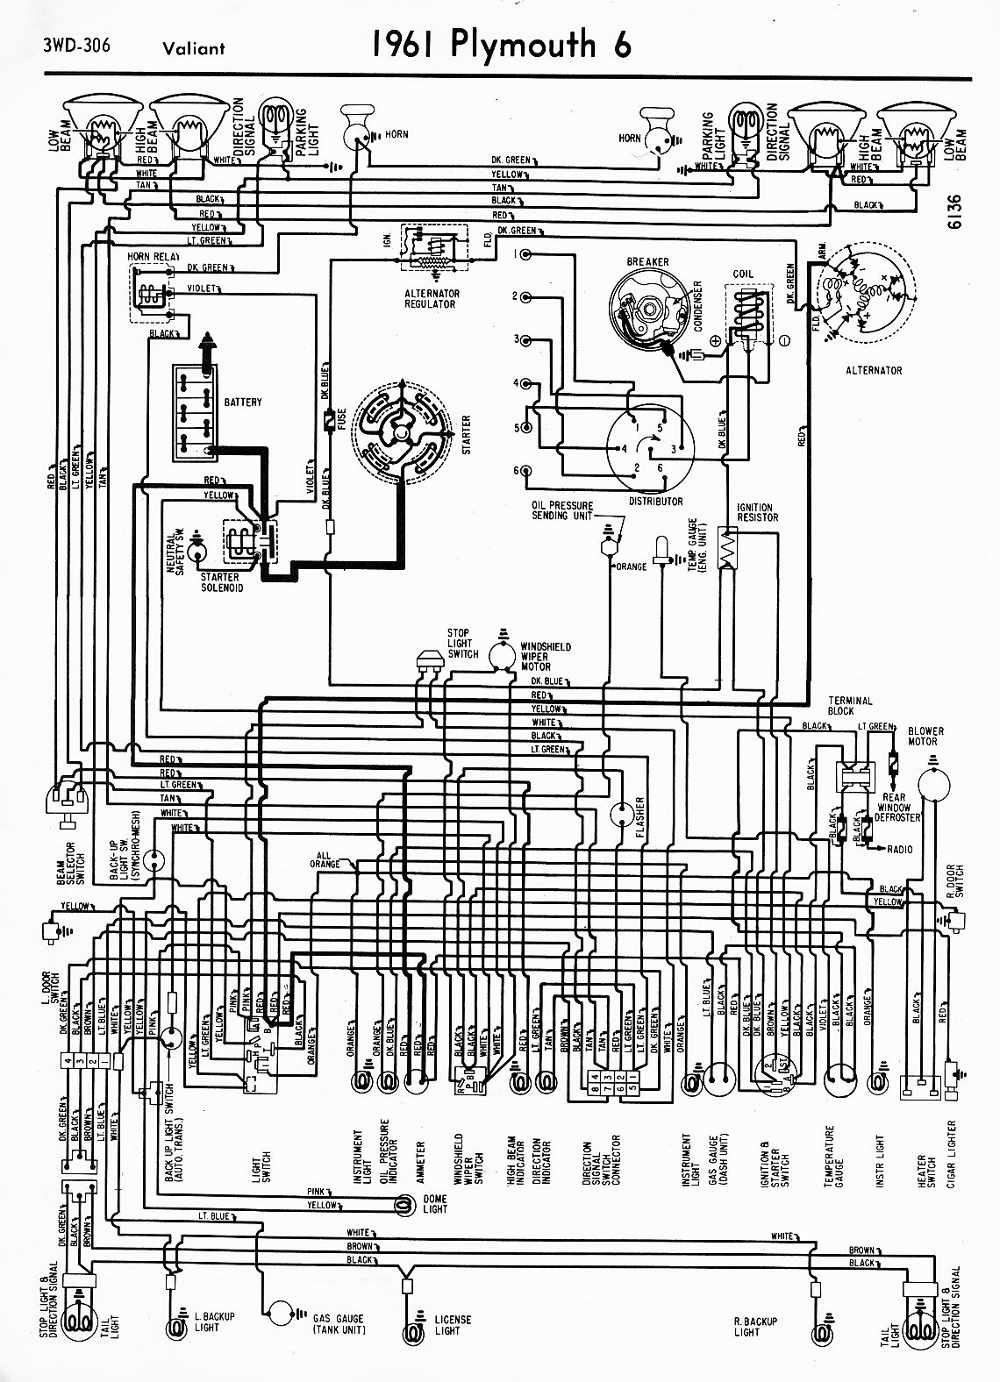 medium resolution of 1965 plymouth barracuda wiring diagram schematic wiring diagram 1965 plymouth barracuda wiring diagram schematic